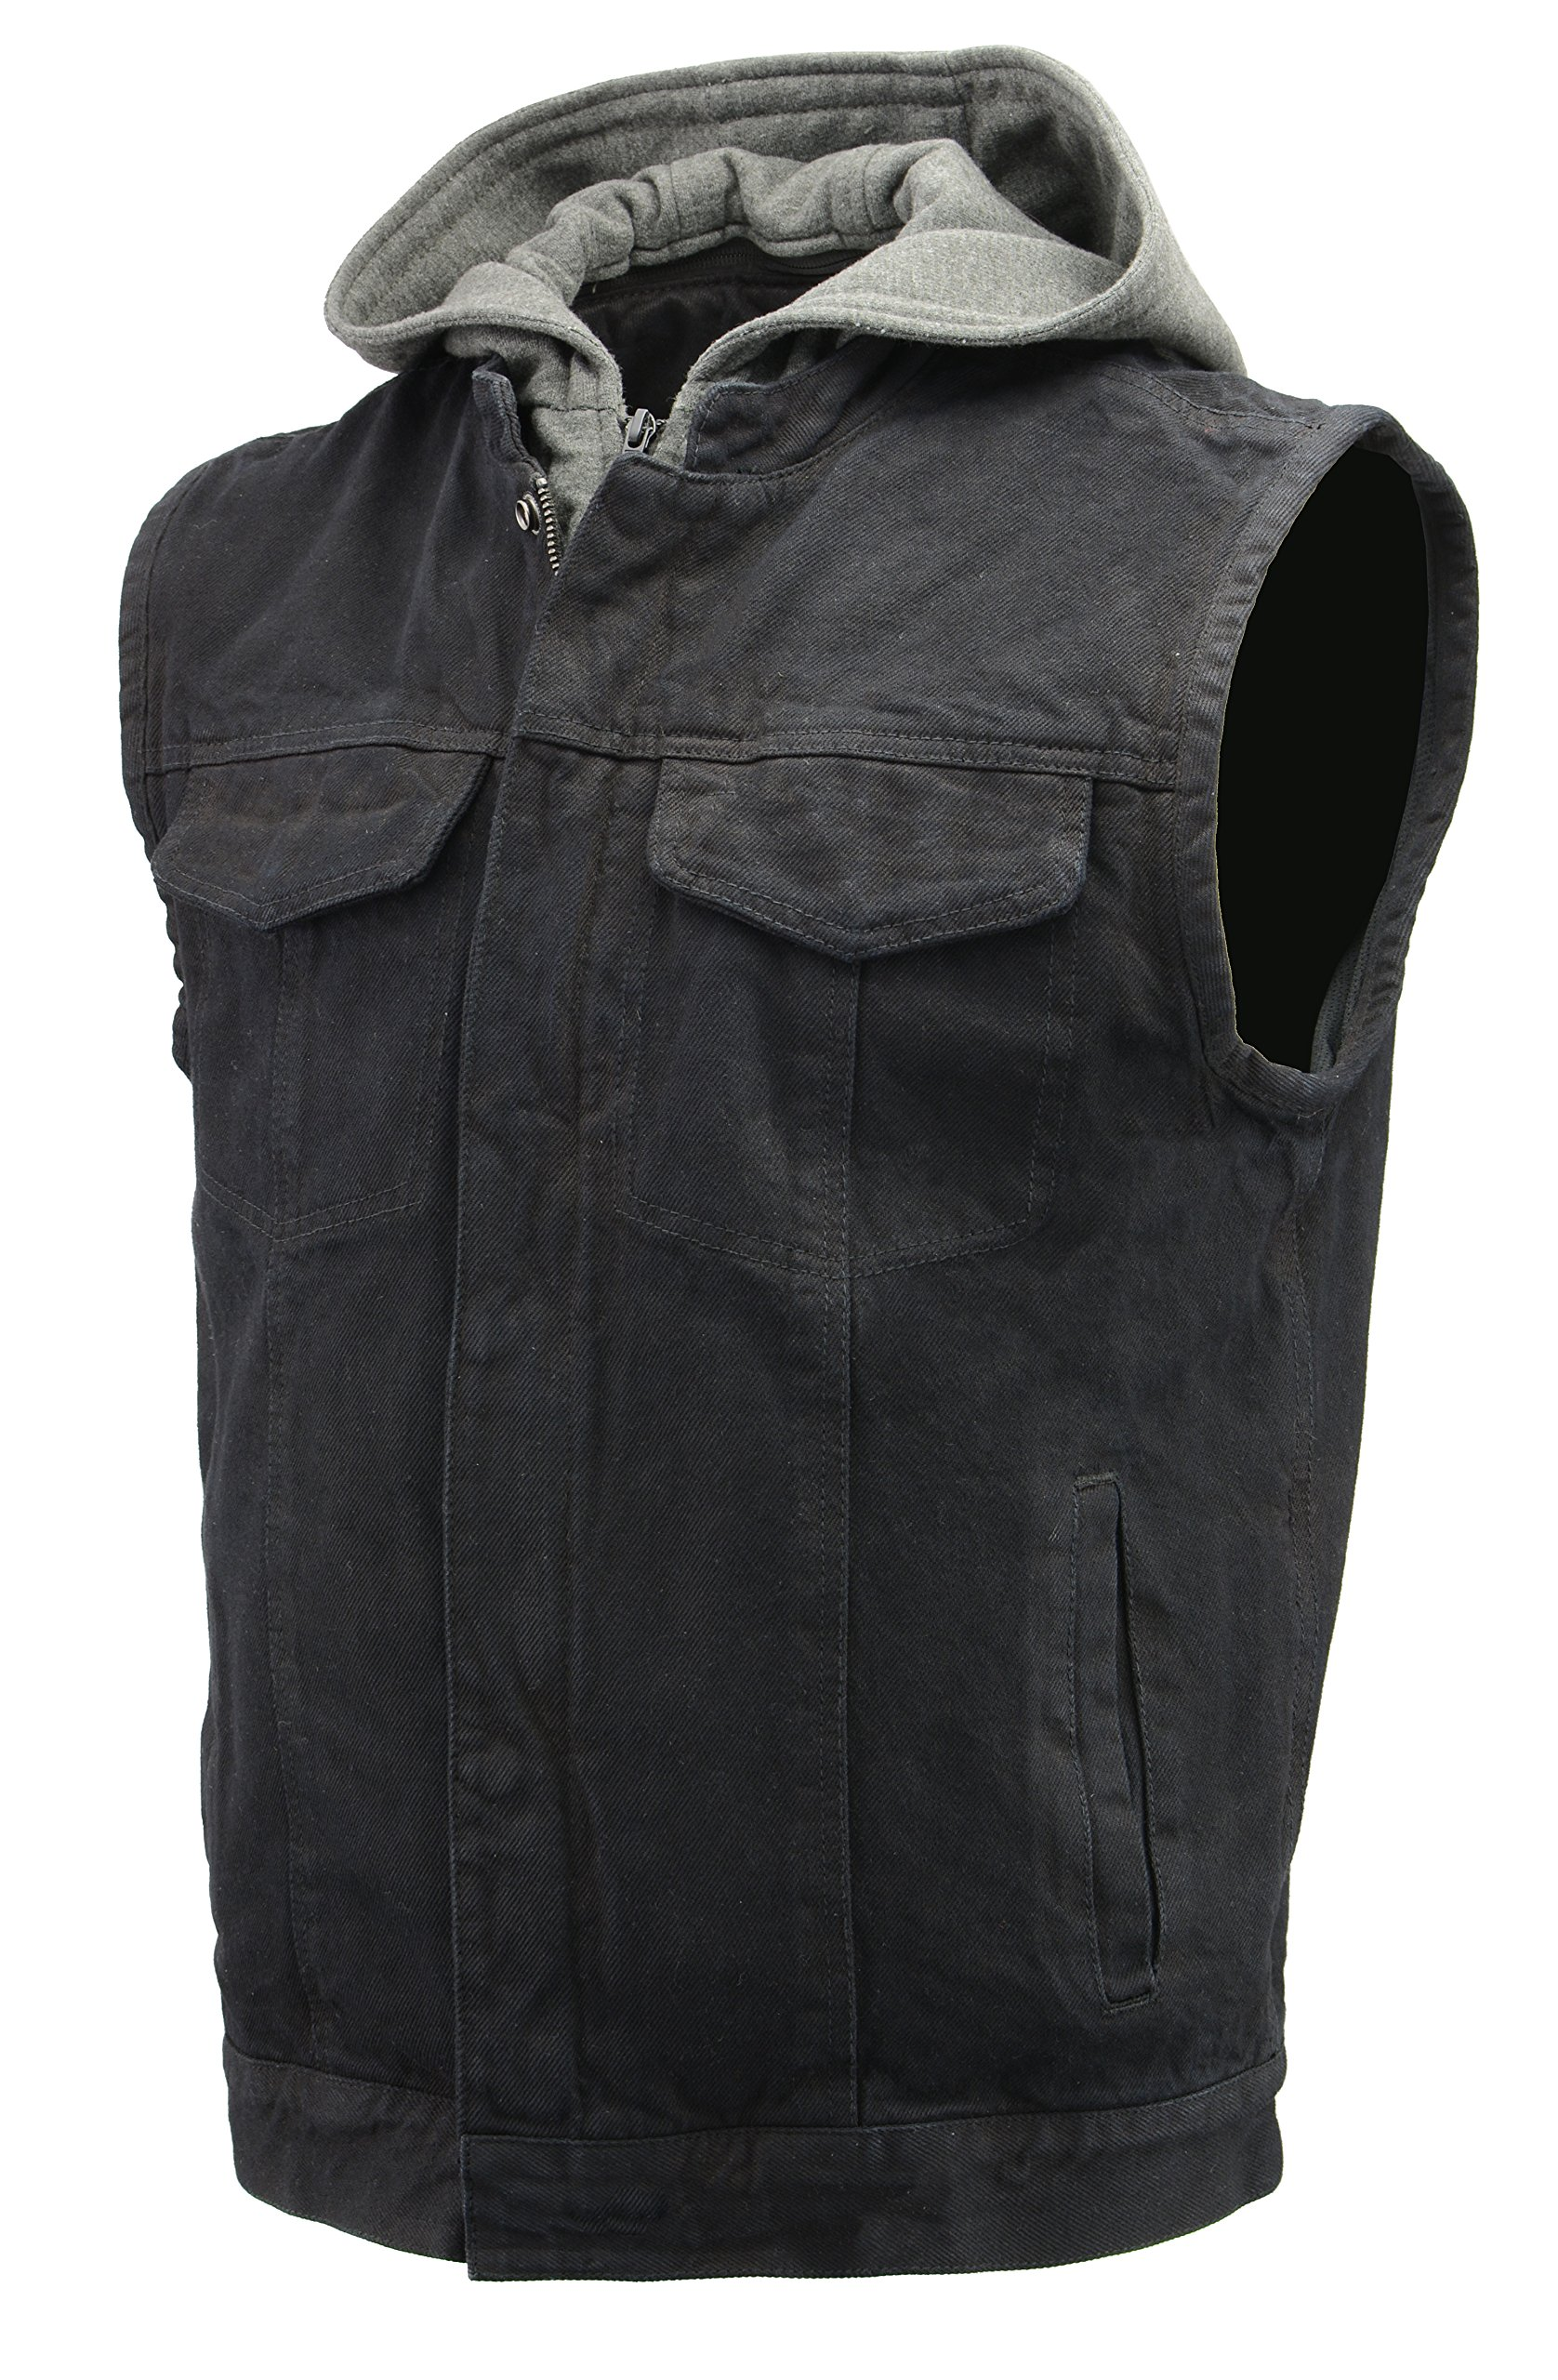 Men's Denim Club Style Vest | Removable Hoodie, Concealed Gun Pockets, Patches Friendly Single Panel Back | Rustic and Casual Black Jean Biker Vest (Black, 5X-Large)